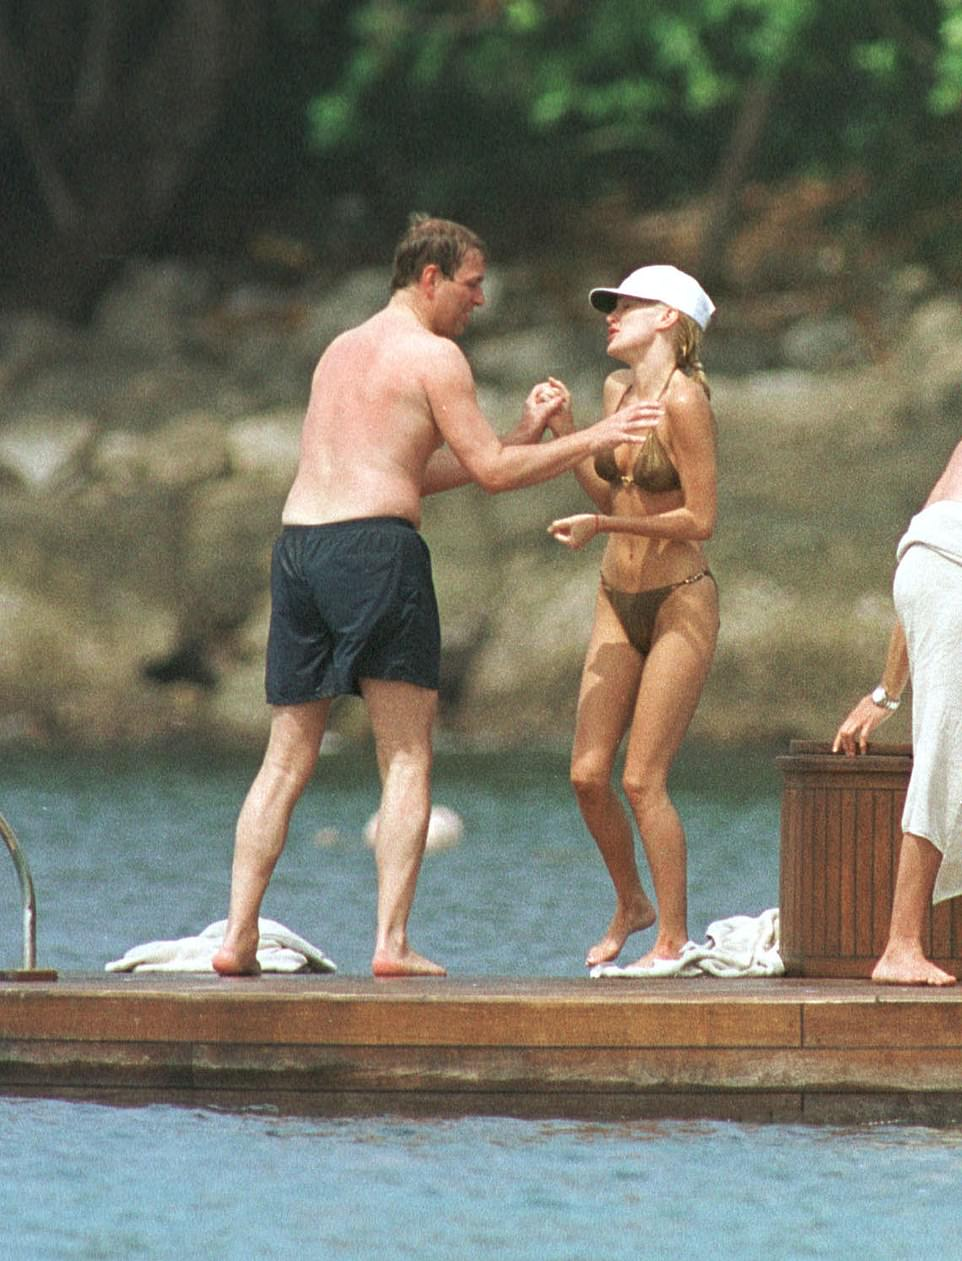 ALL HANDS ON DECK: The Prince holds hands with American supermodel Normandie White in Thailand in 2001